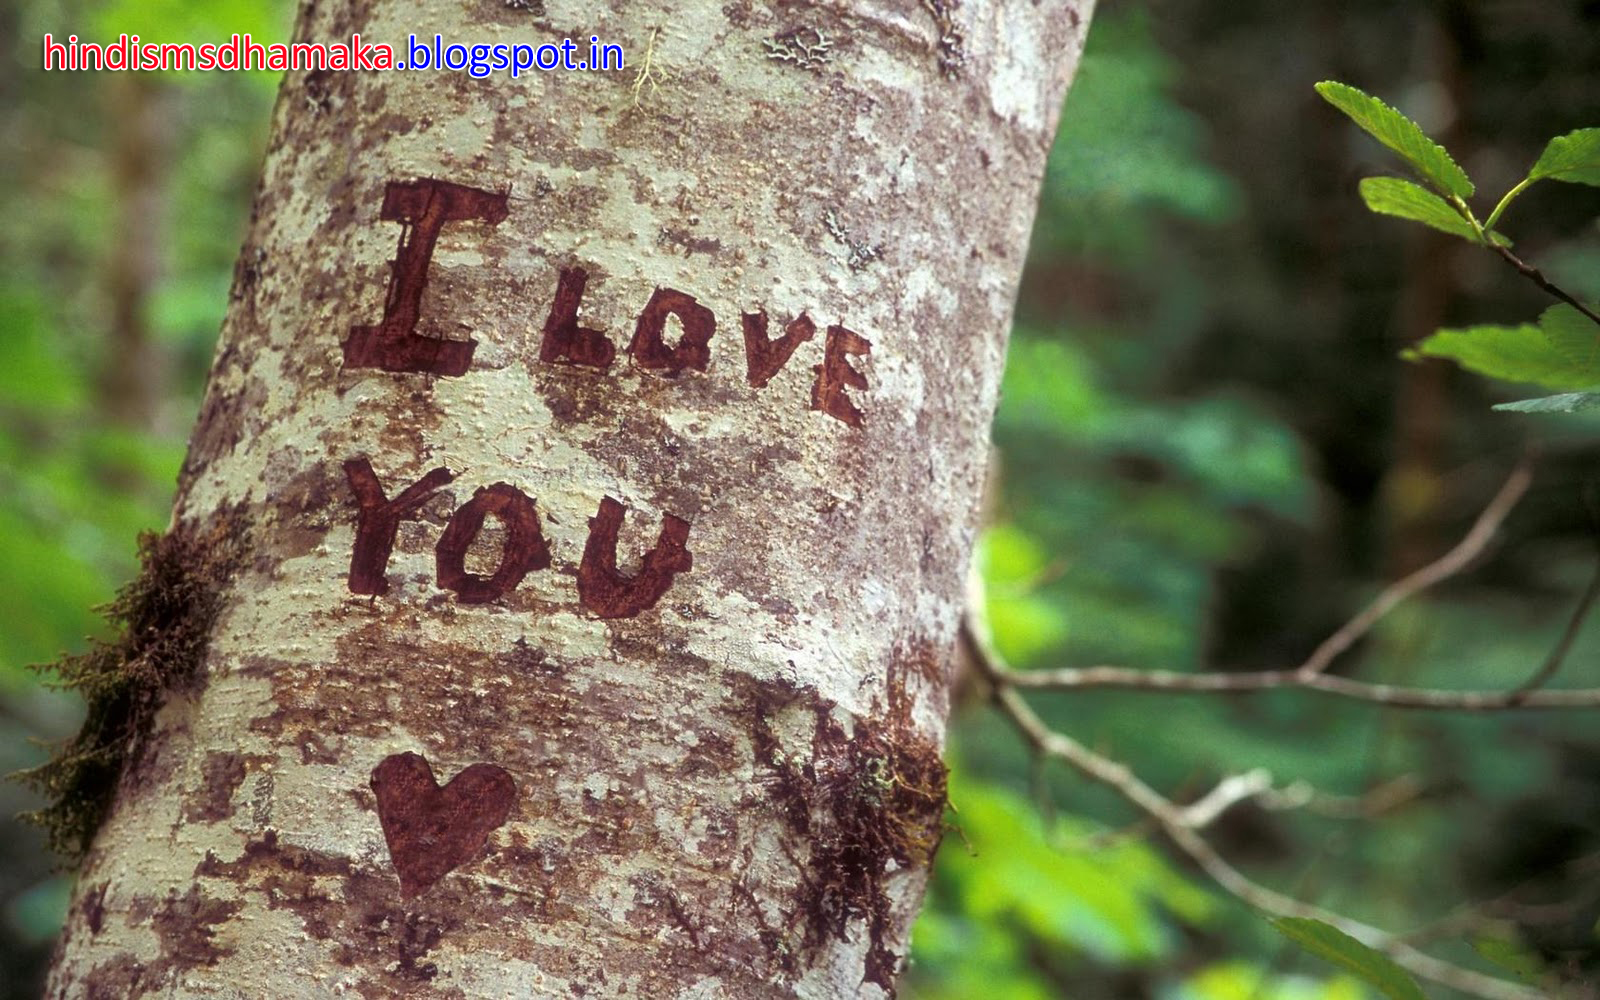 Nature Love Wallpaper Hd: I Love You On Tree Wallpapercute Quotes Happiness